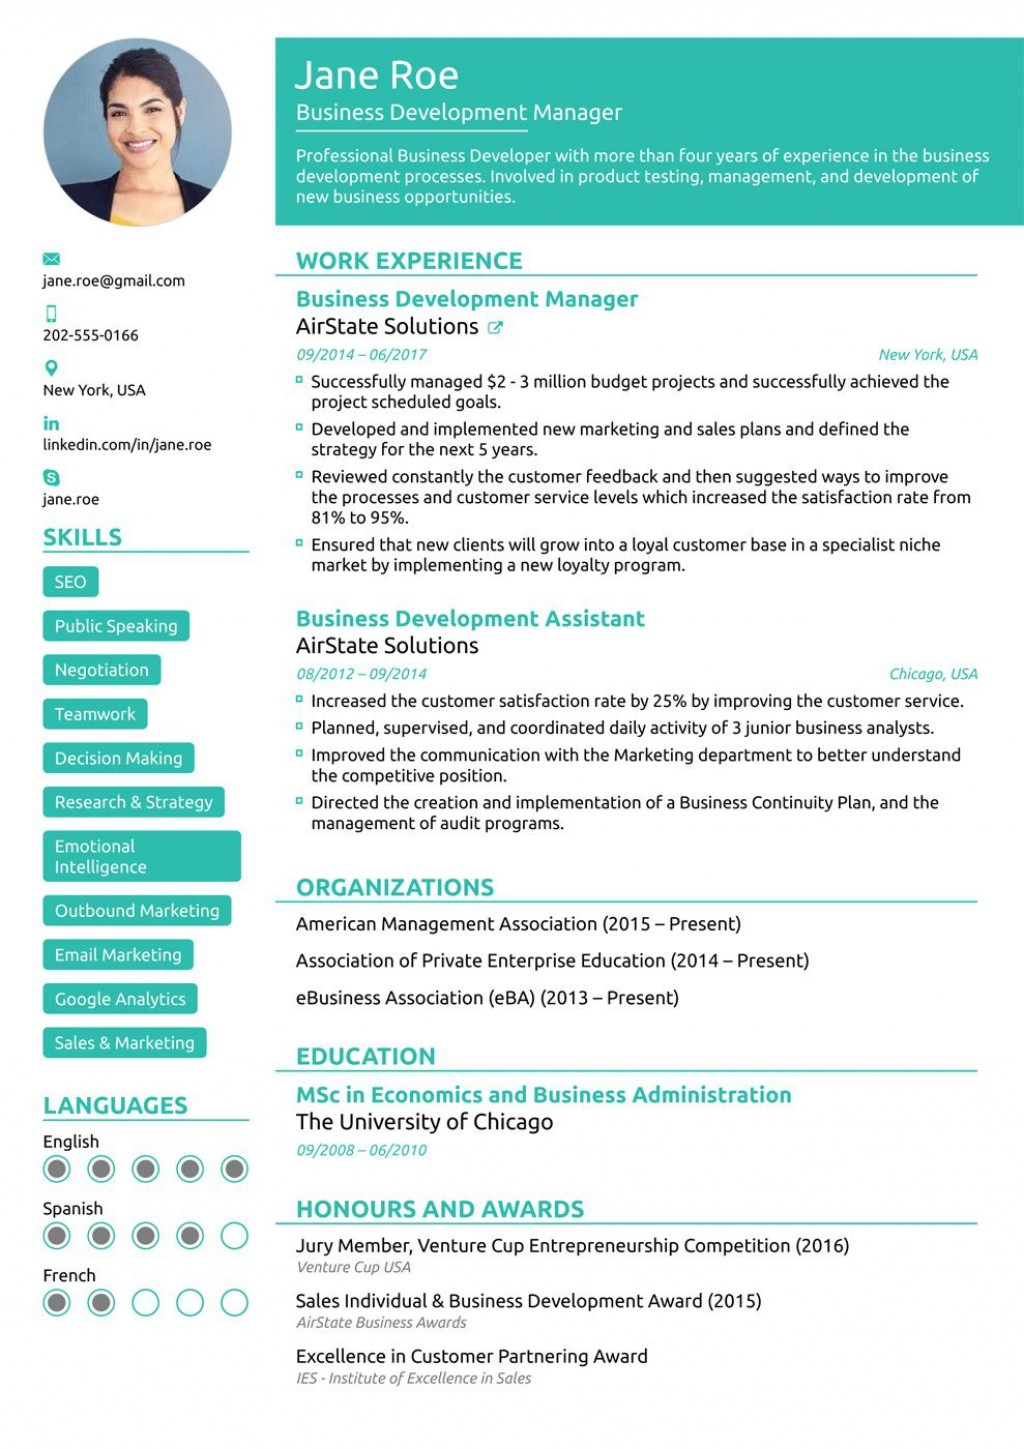 006 Unusual Functional Resume Template Free Highest Quality Large